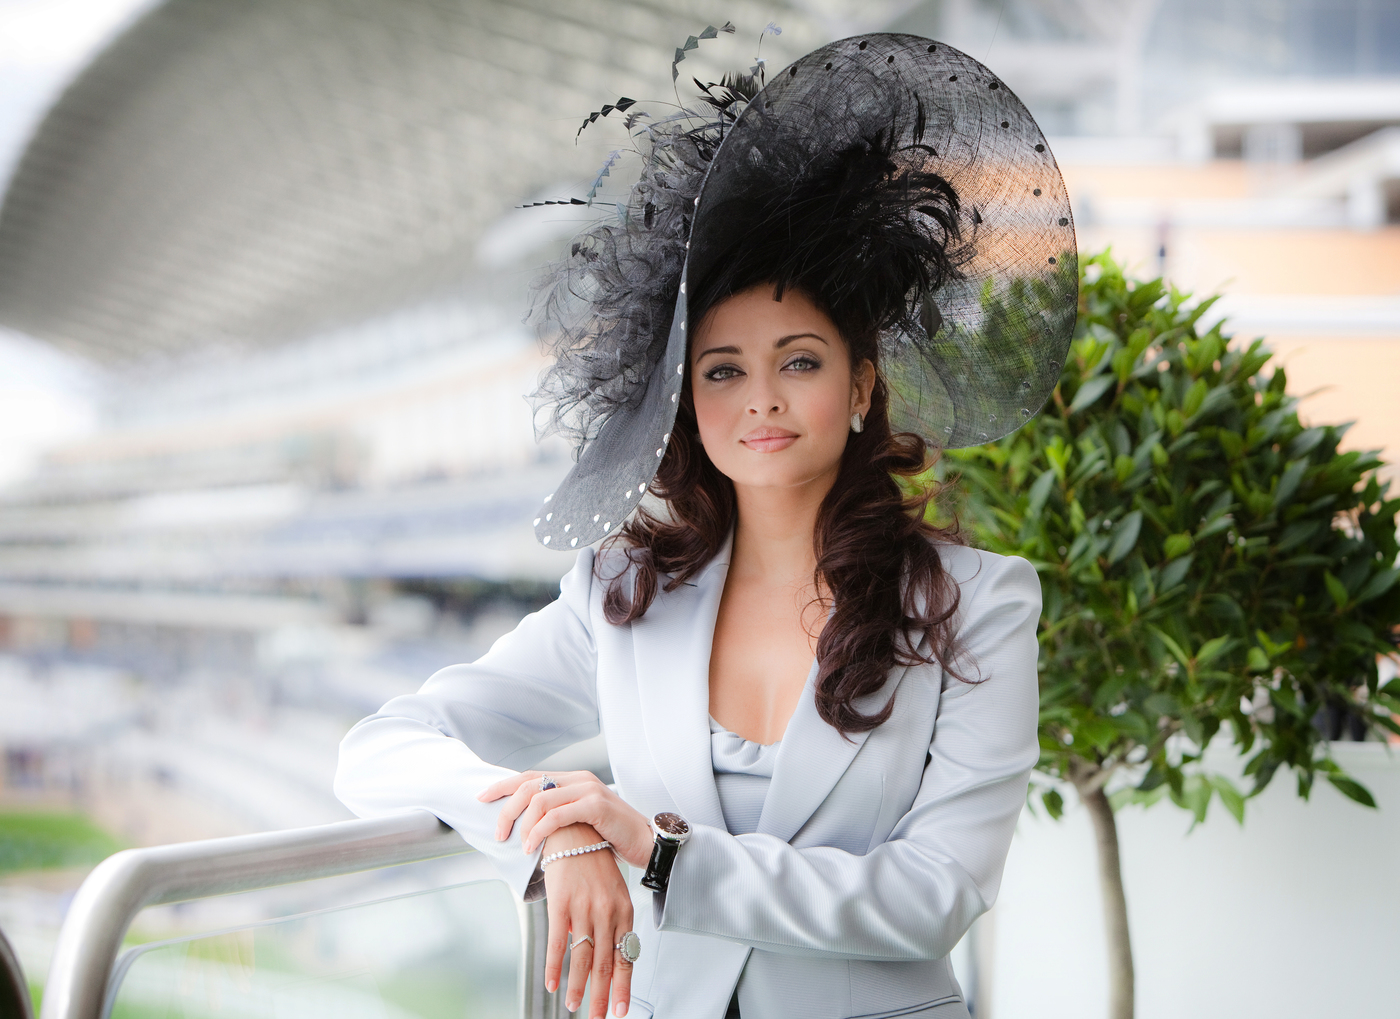 Longines Flat Racing Event: Longines Ambassador of Elegance Aishwarya Rai Bachchan lights up Royal Ascot with her radiant presence 3